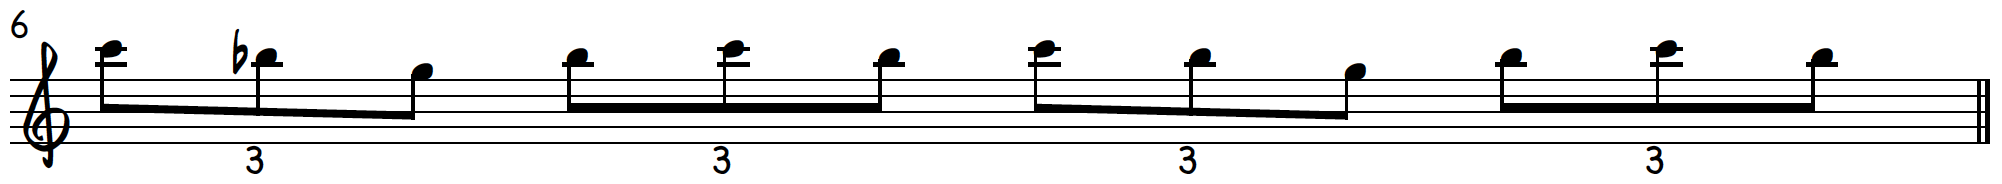 Grip 1 triplet exercise to practice blues piano licks